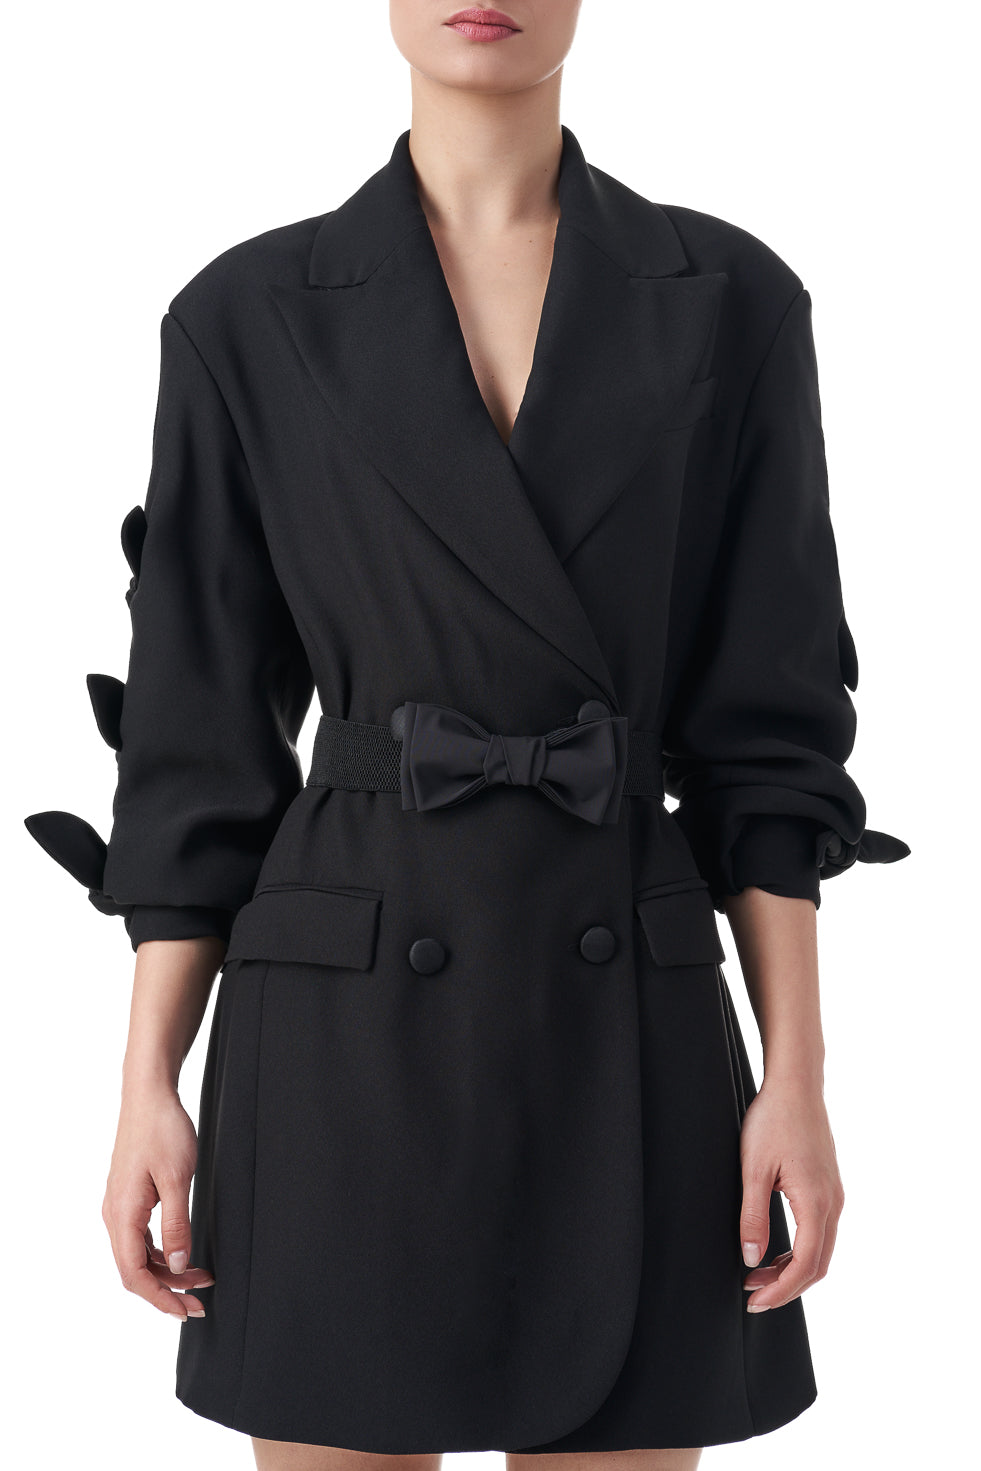 Elise Black tie sleeve belted blazer dress